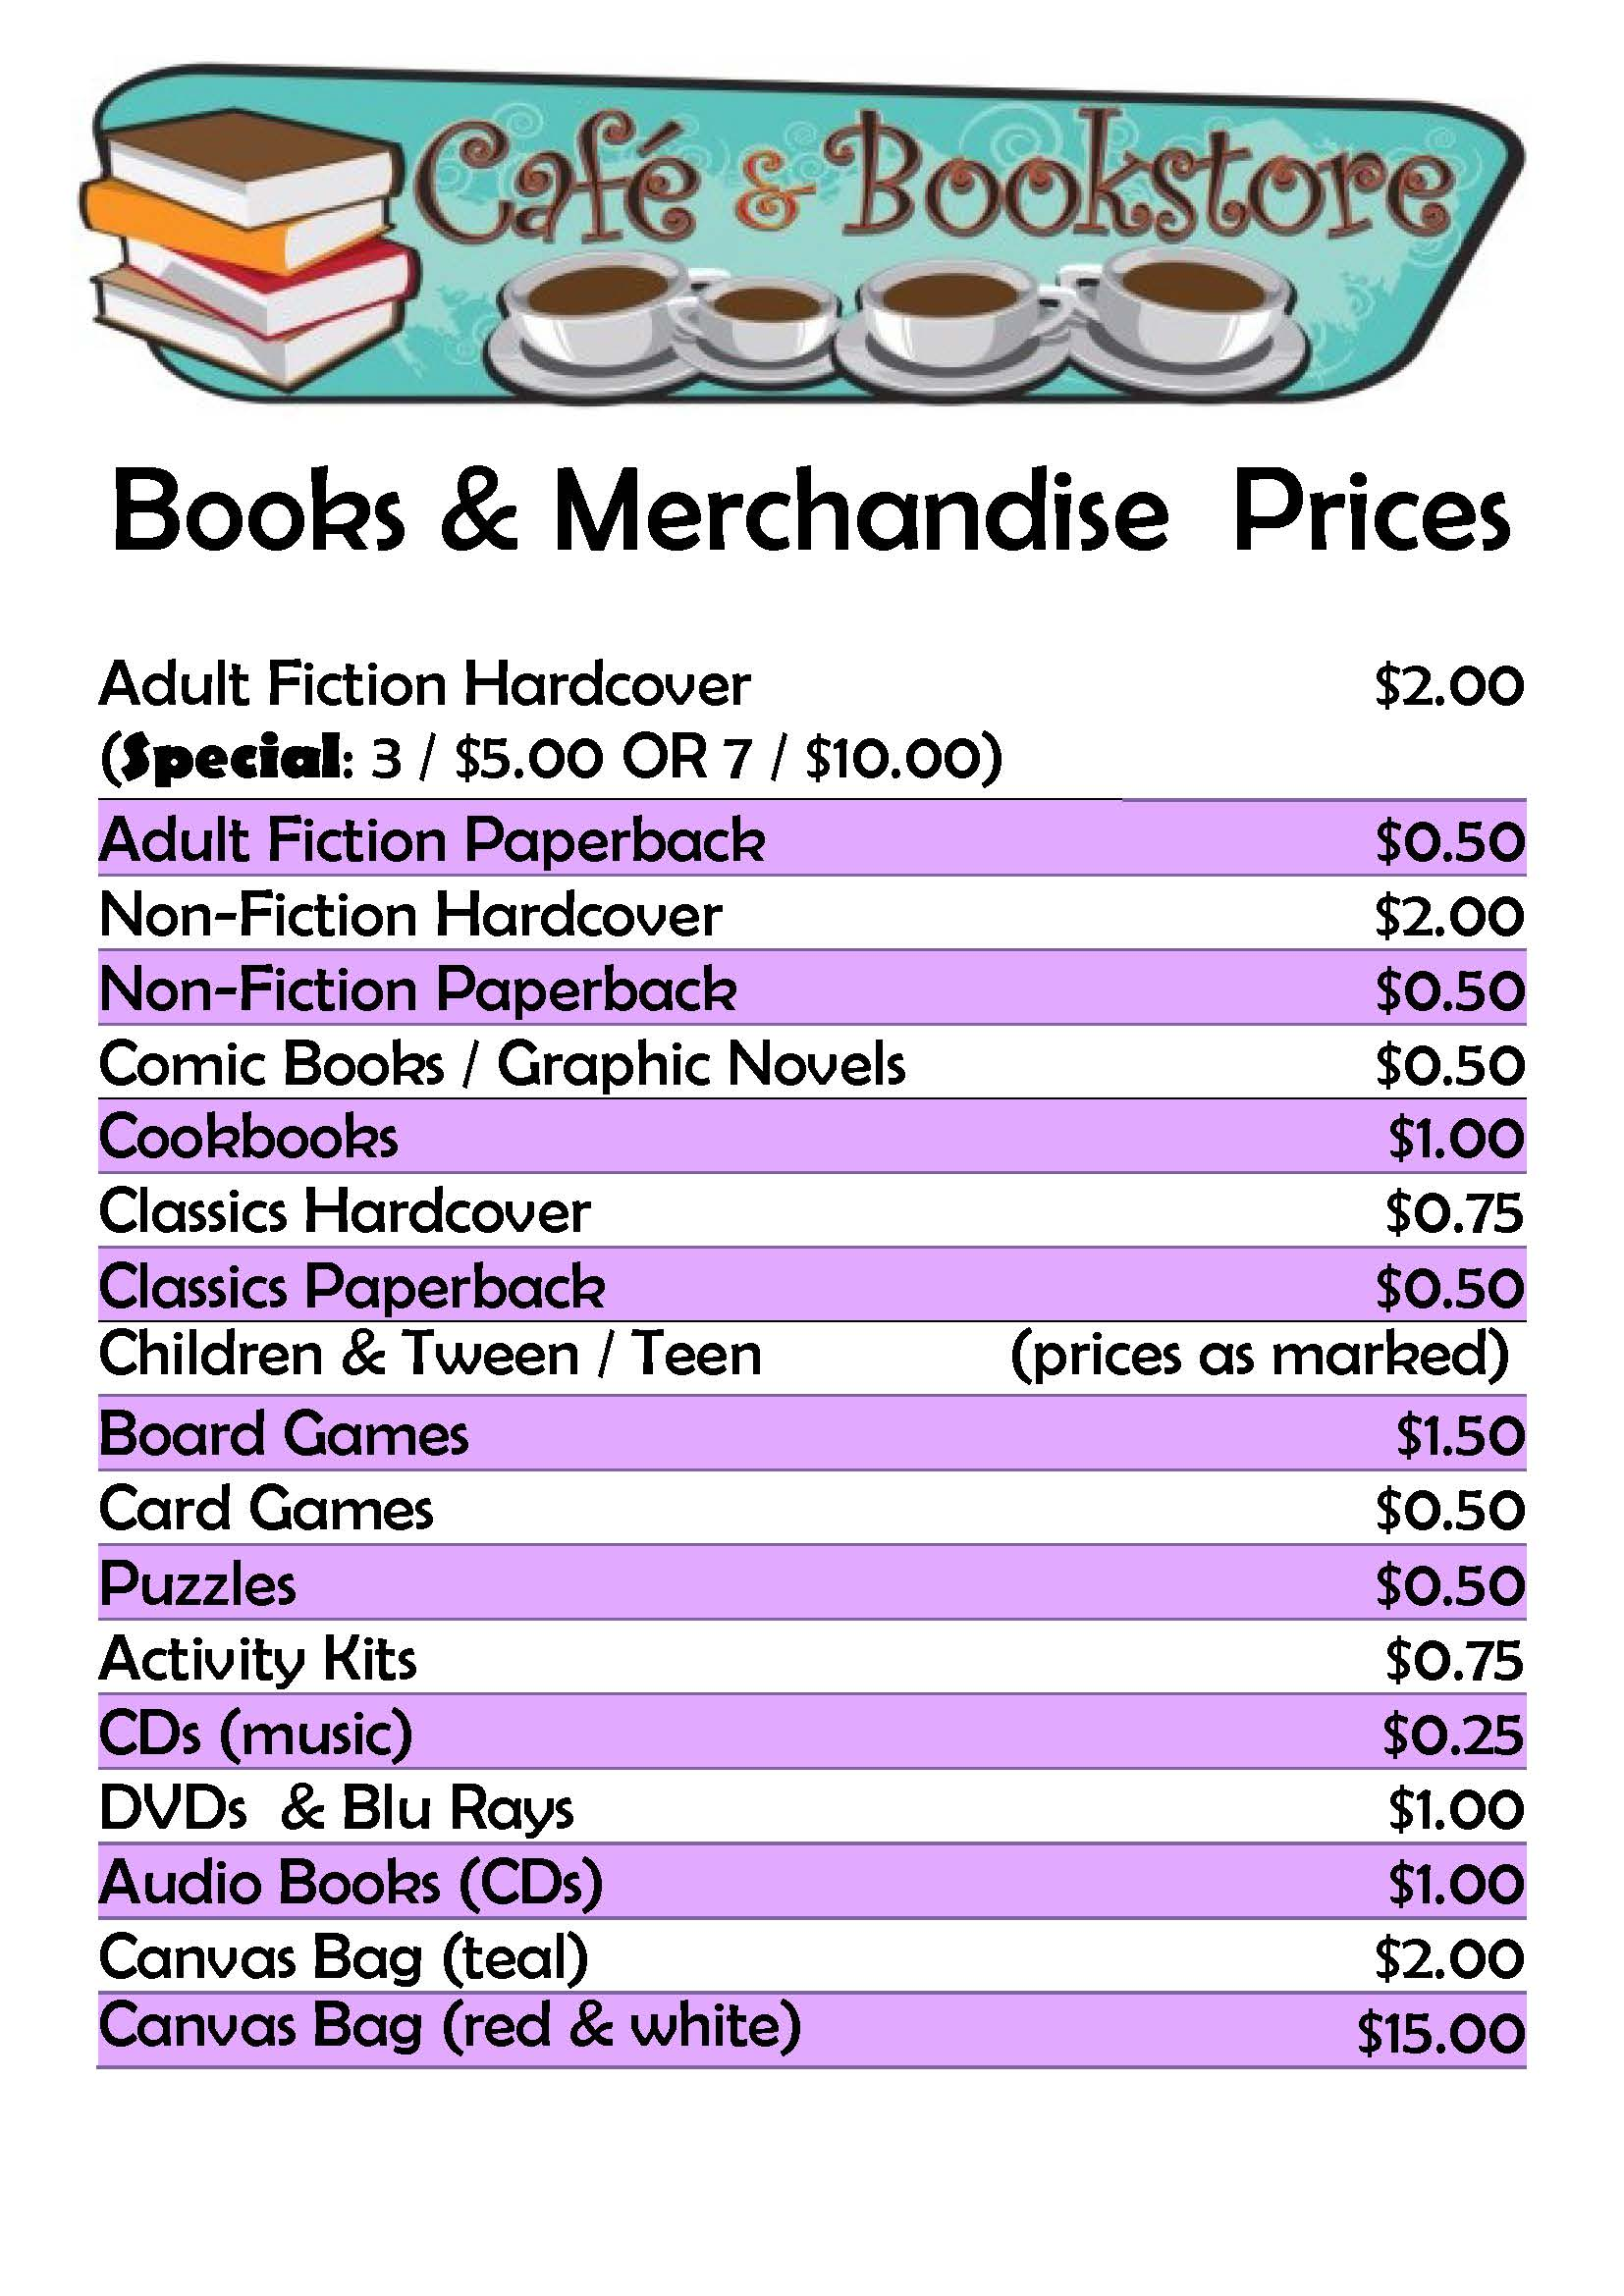 Prices for books in the Bookstore